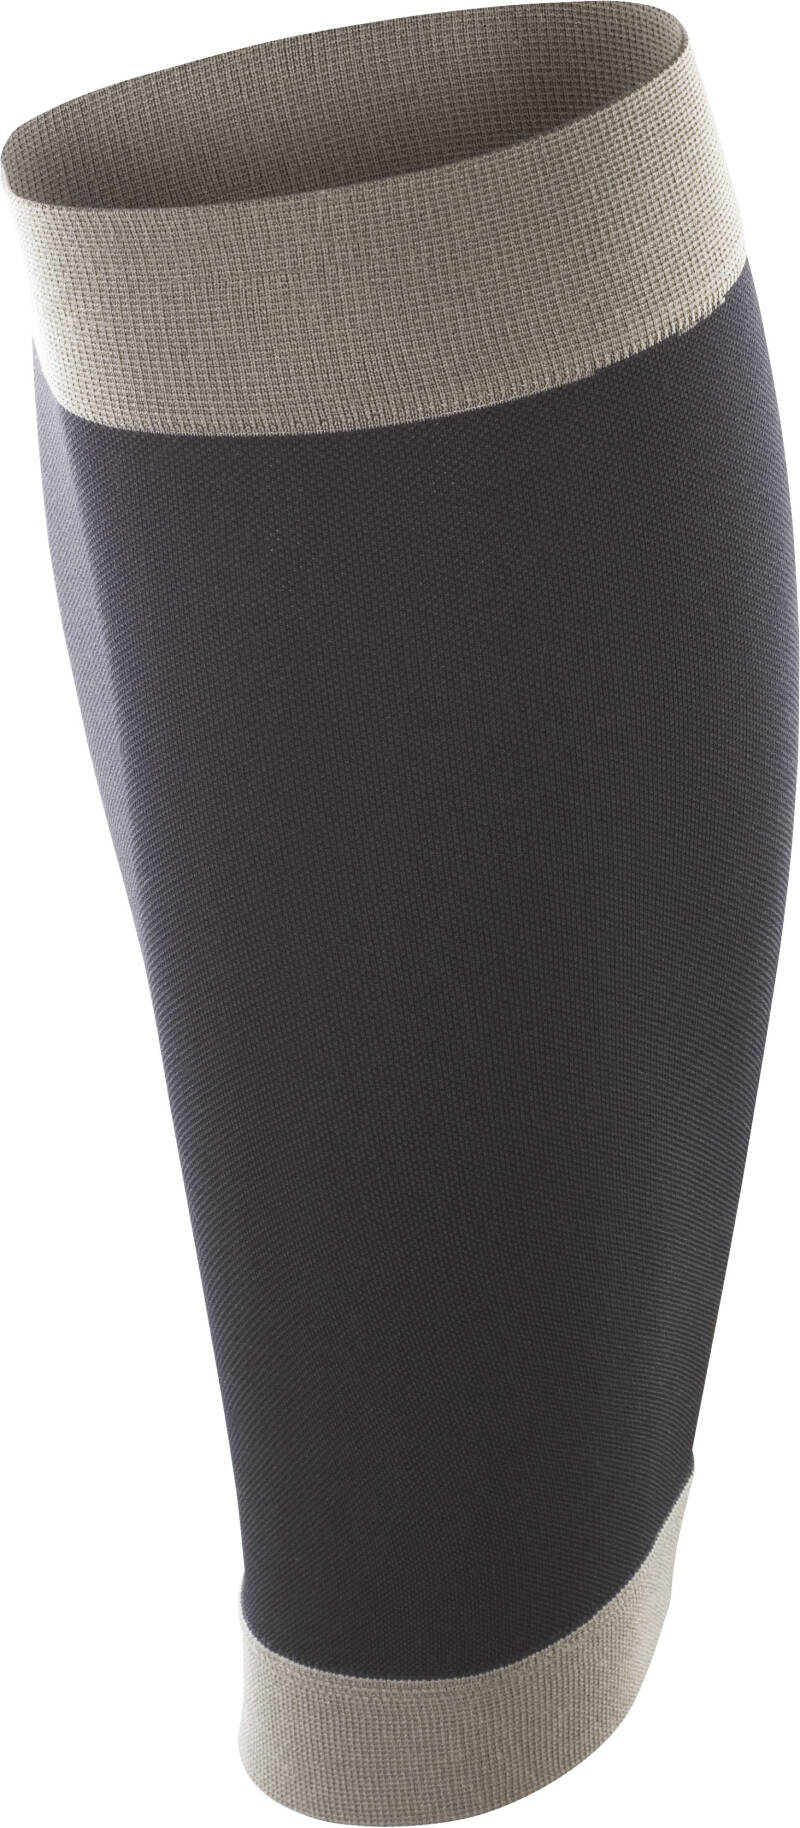 Compression Calve sleeves 007